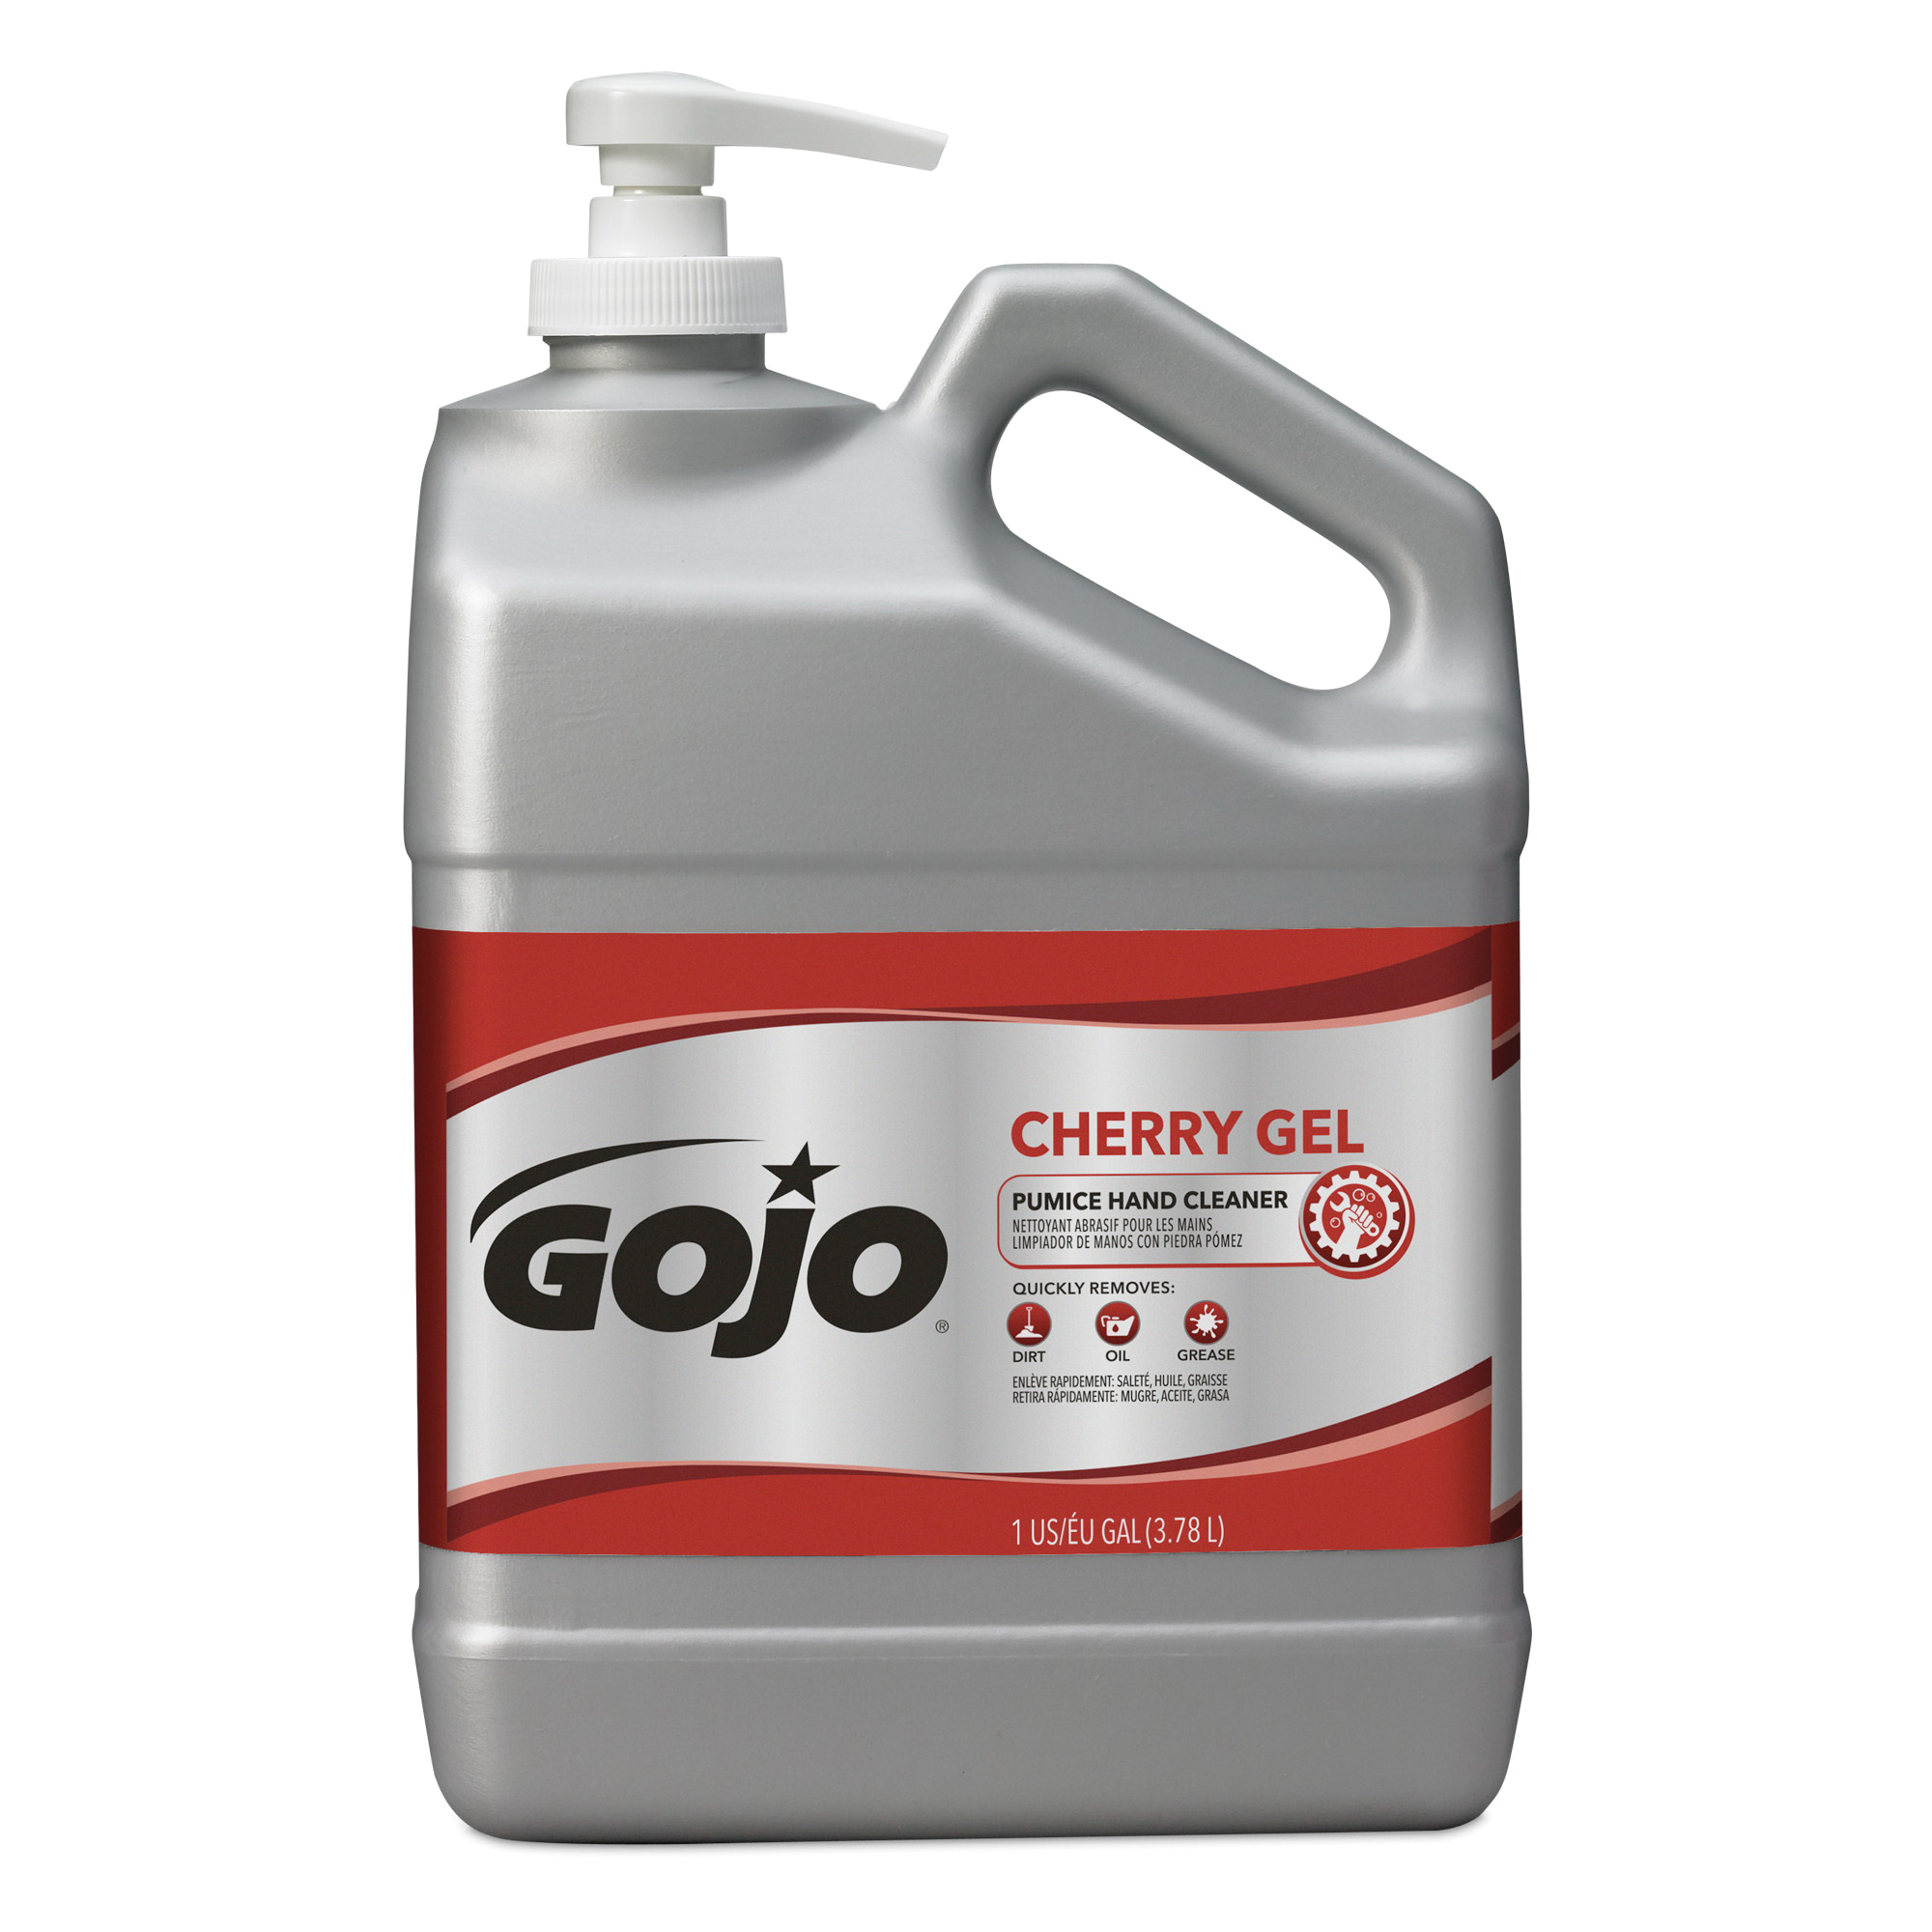 GOJO® 2358-02 Pumice Hand Cleaner With Pumice Scrubbers, 1 gal, Bottle, Gel, Cherry, Translucent Red